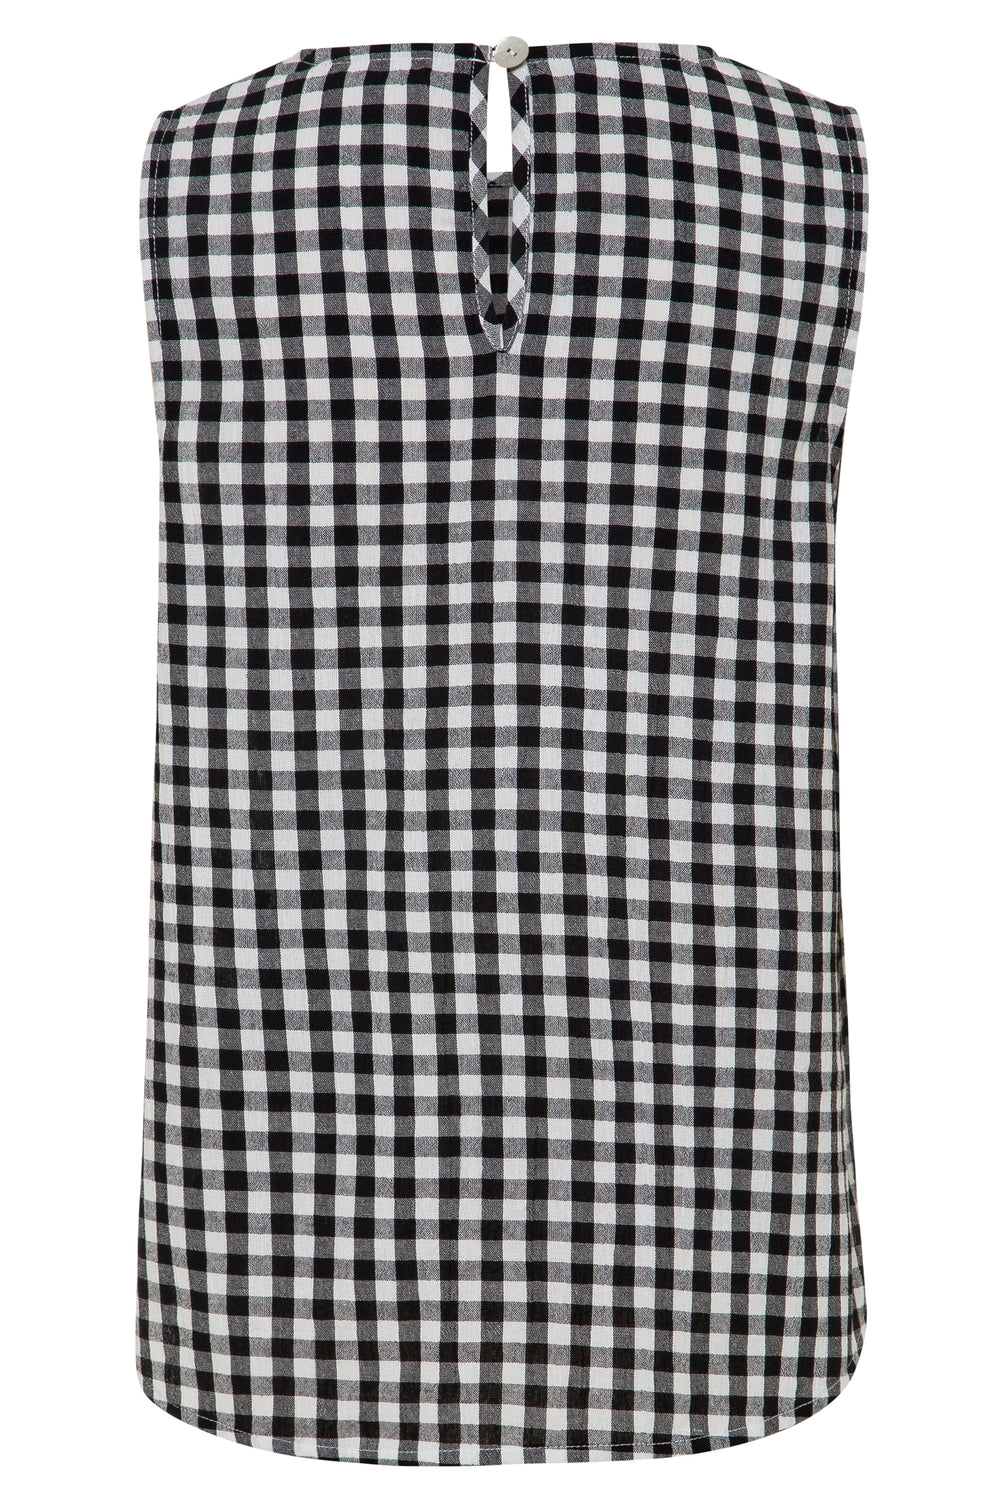 Lottie Top In Black Gingham